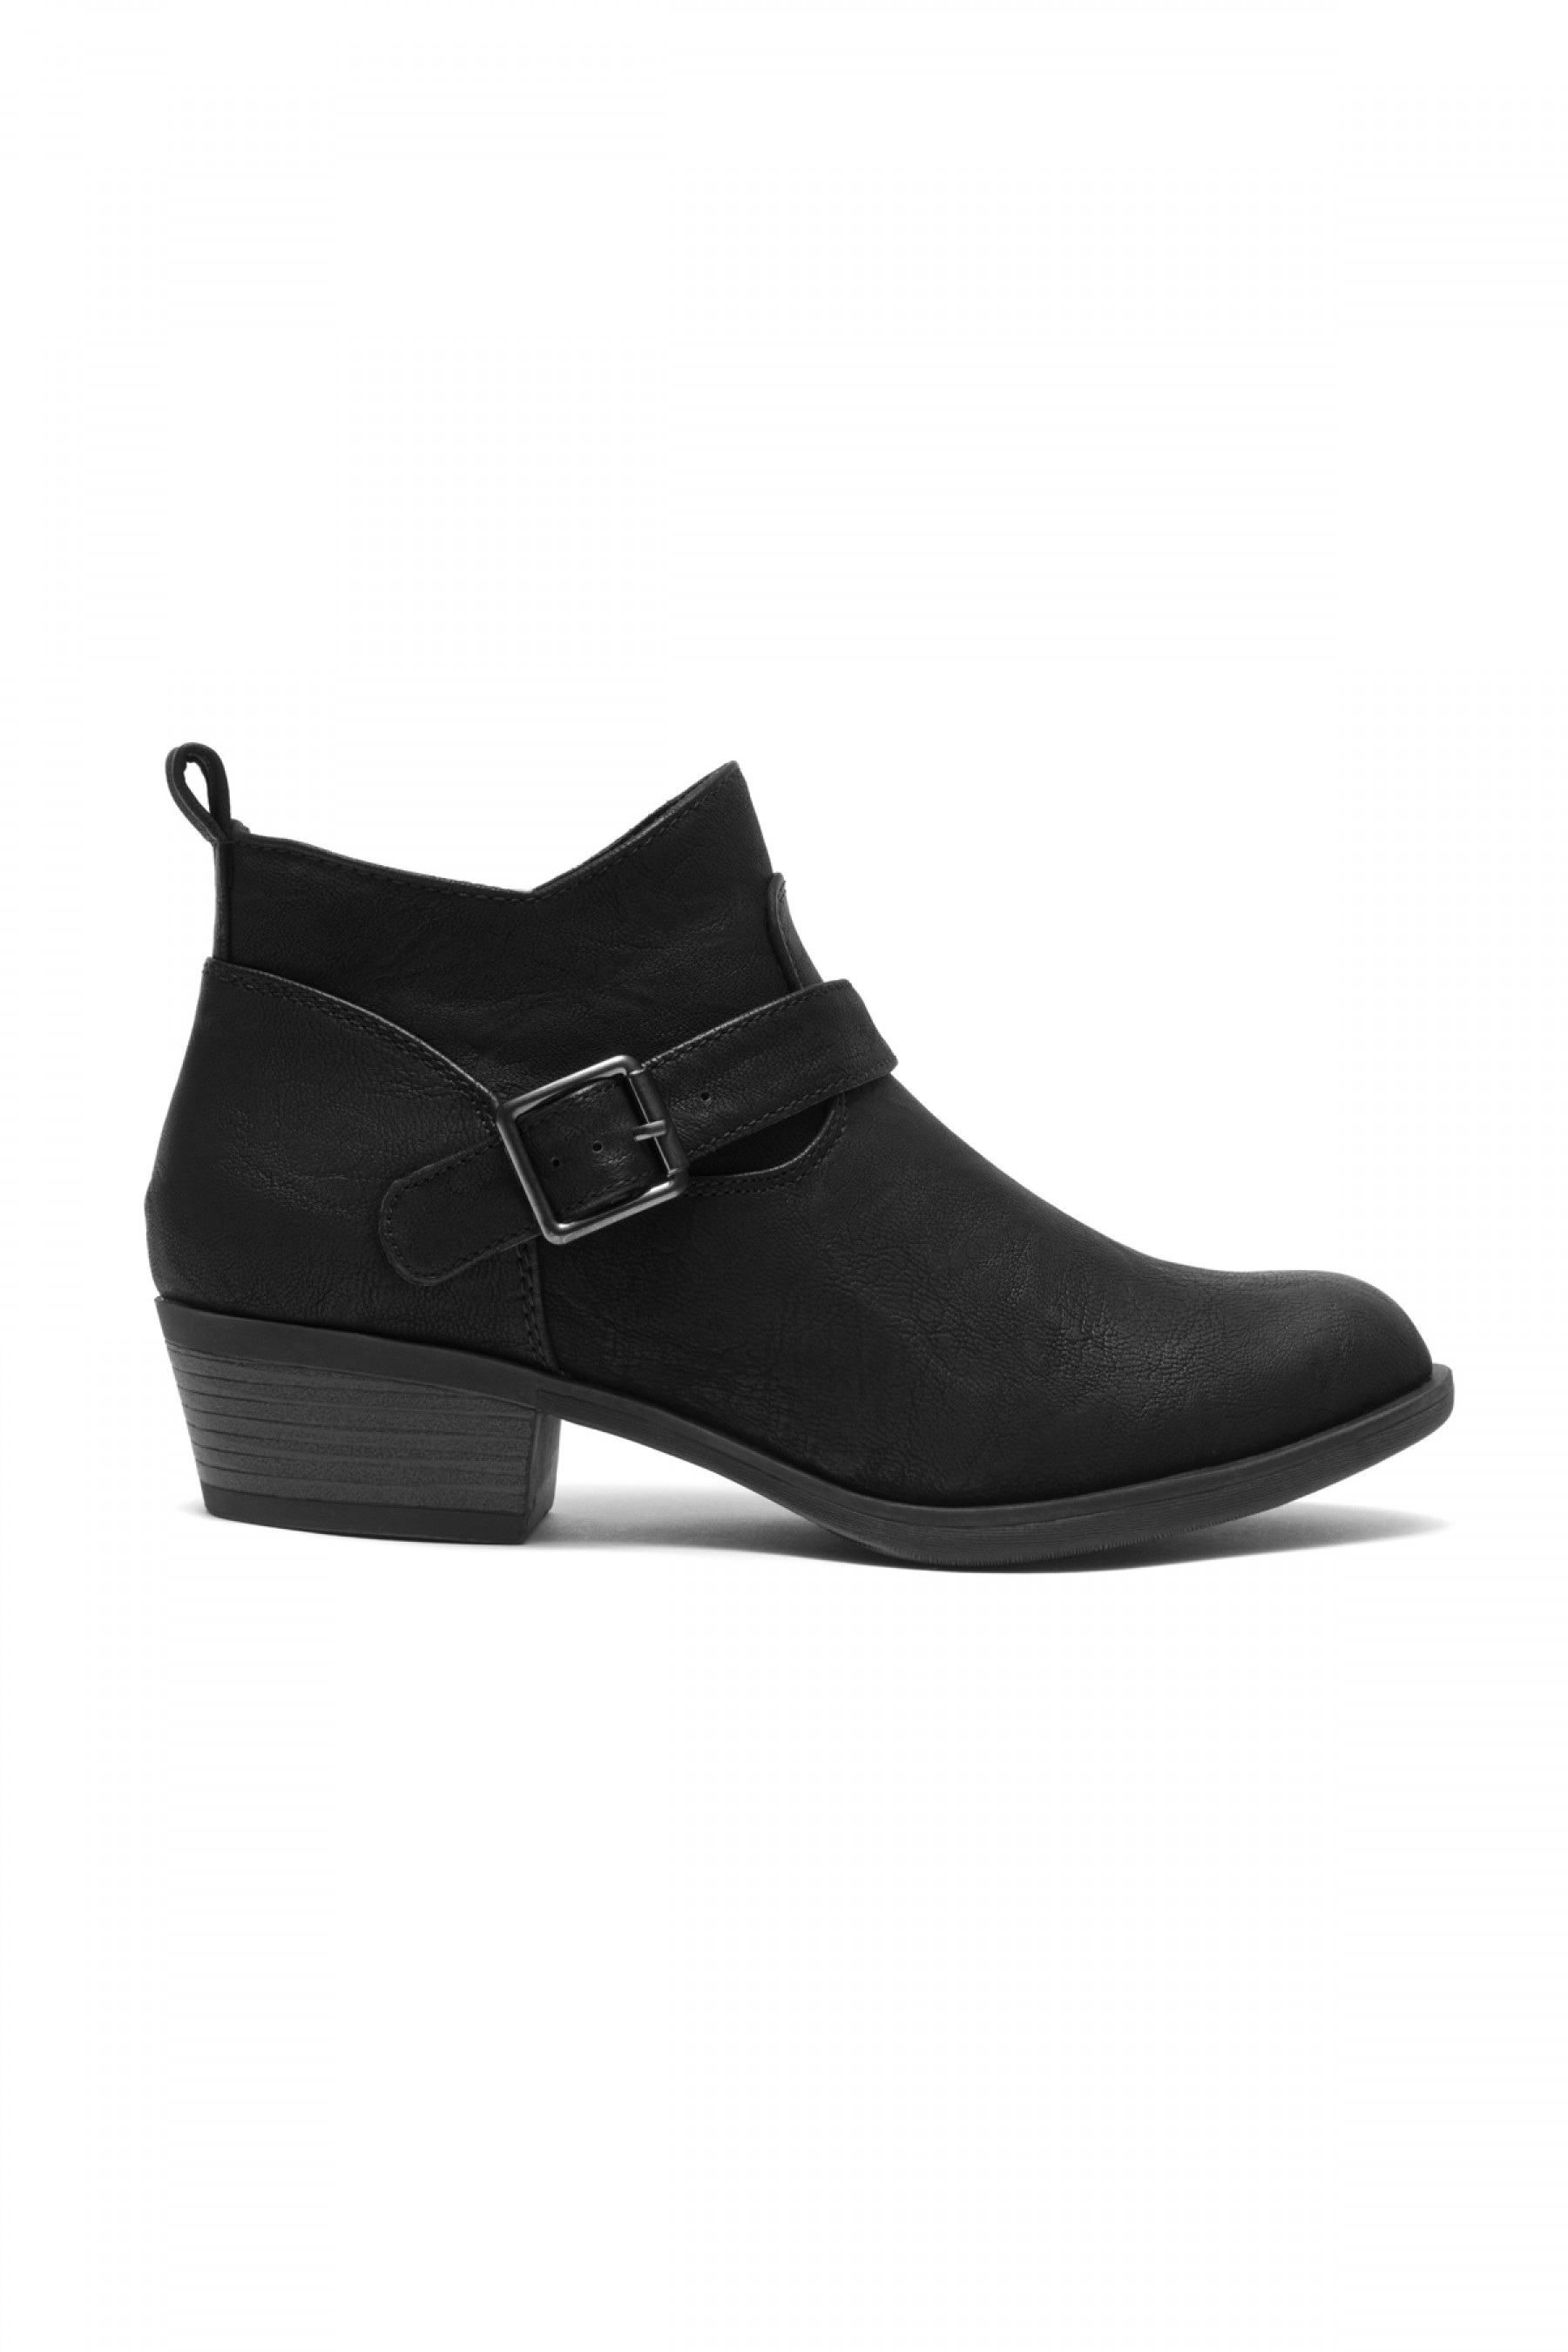 Women's Black Raavver Basel Boot. Fashionable Stacked Heels ...